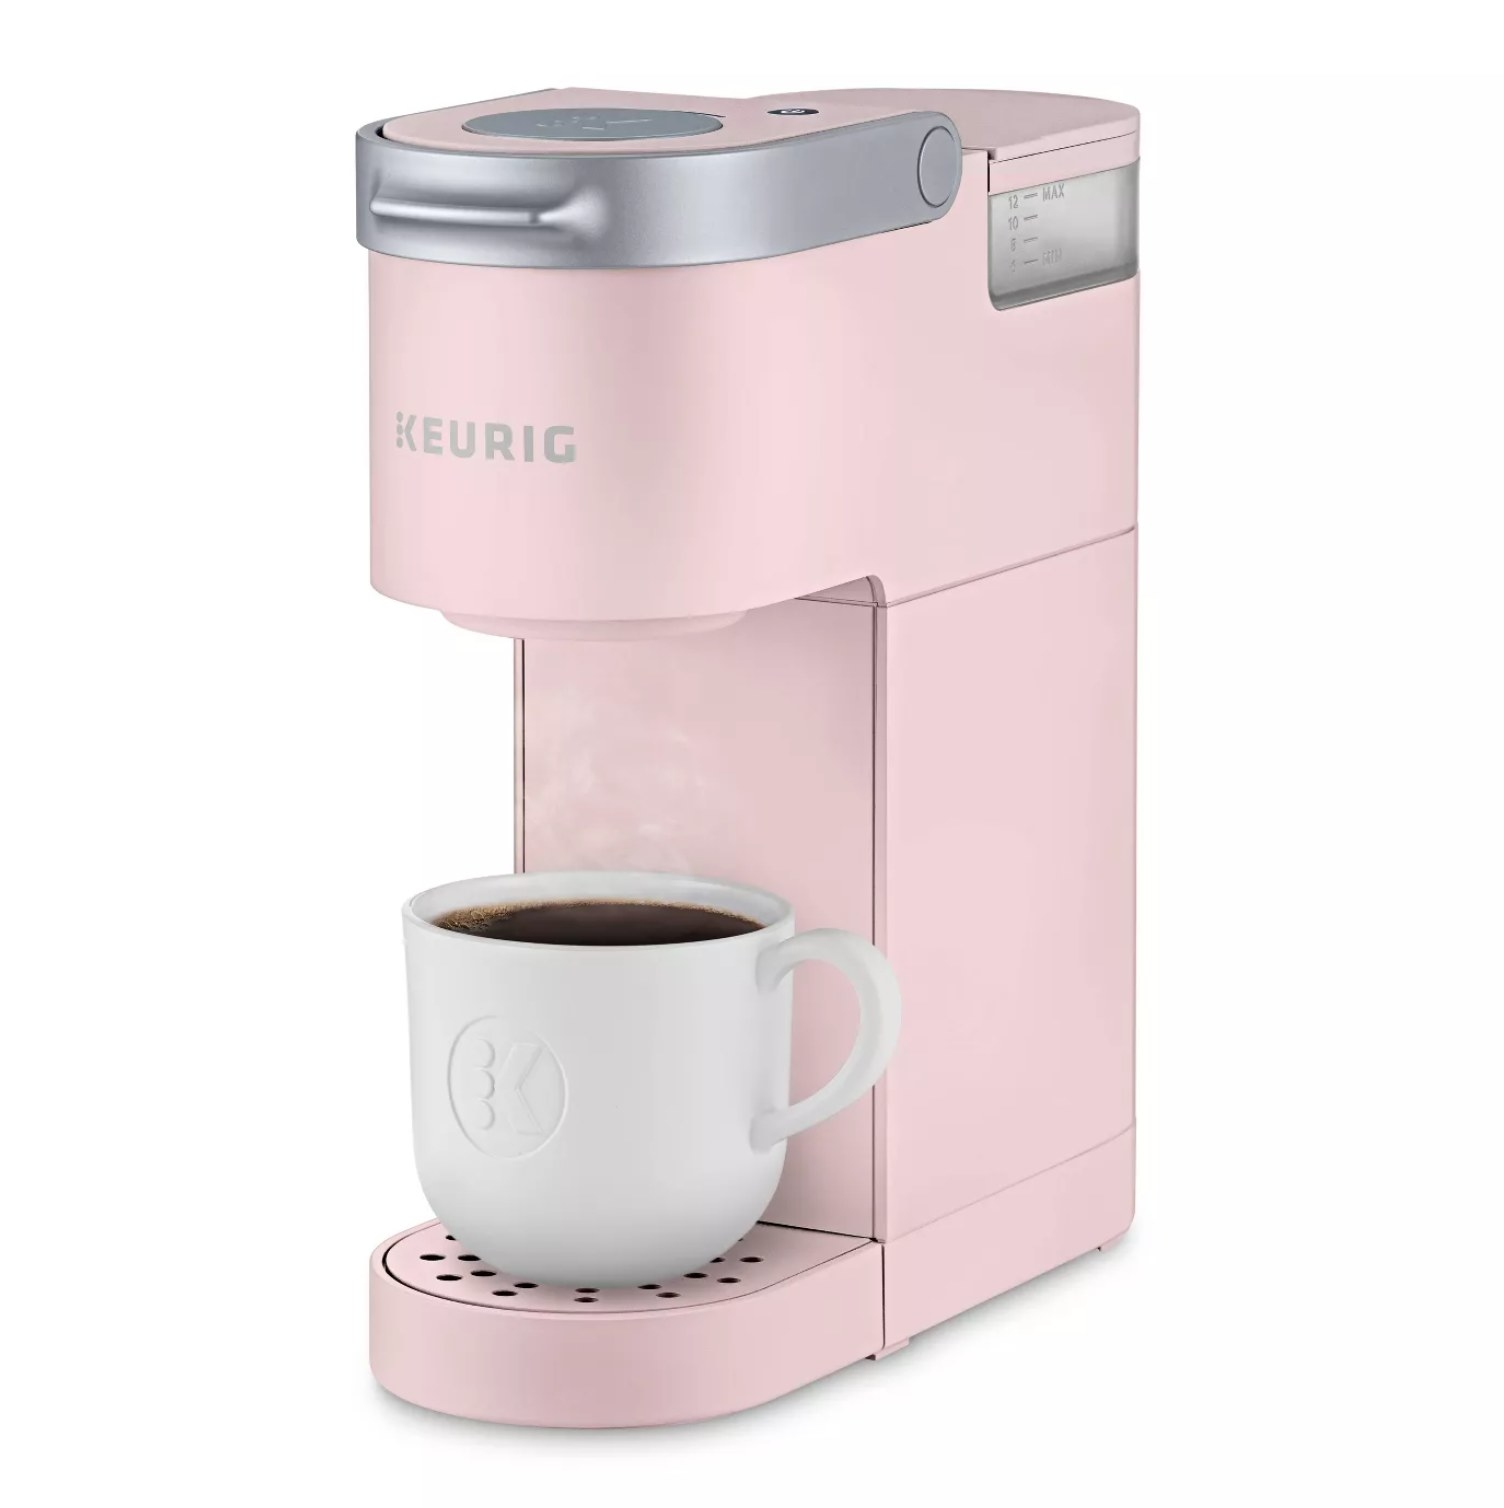 The Keurig in dusty rose color with a cup of coffee